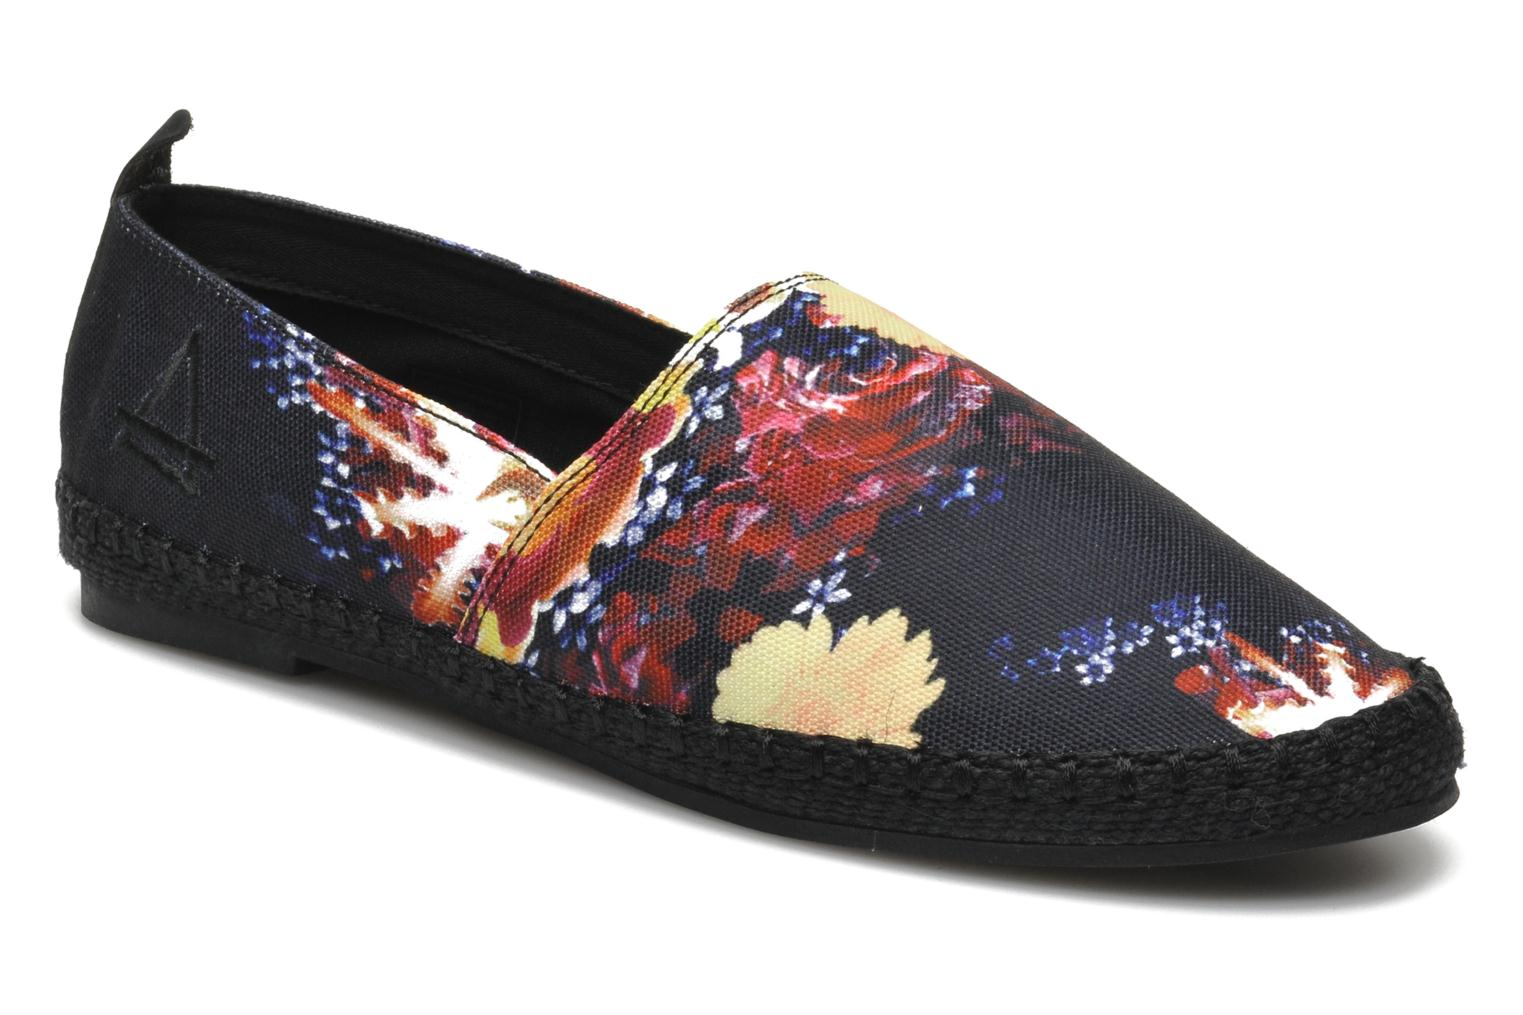 Espadrilles Espadrille colors print F by Eleven paris